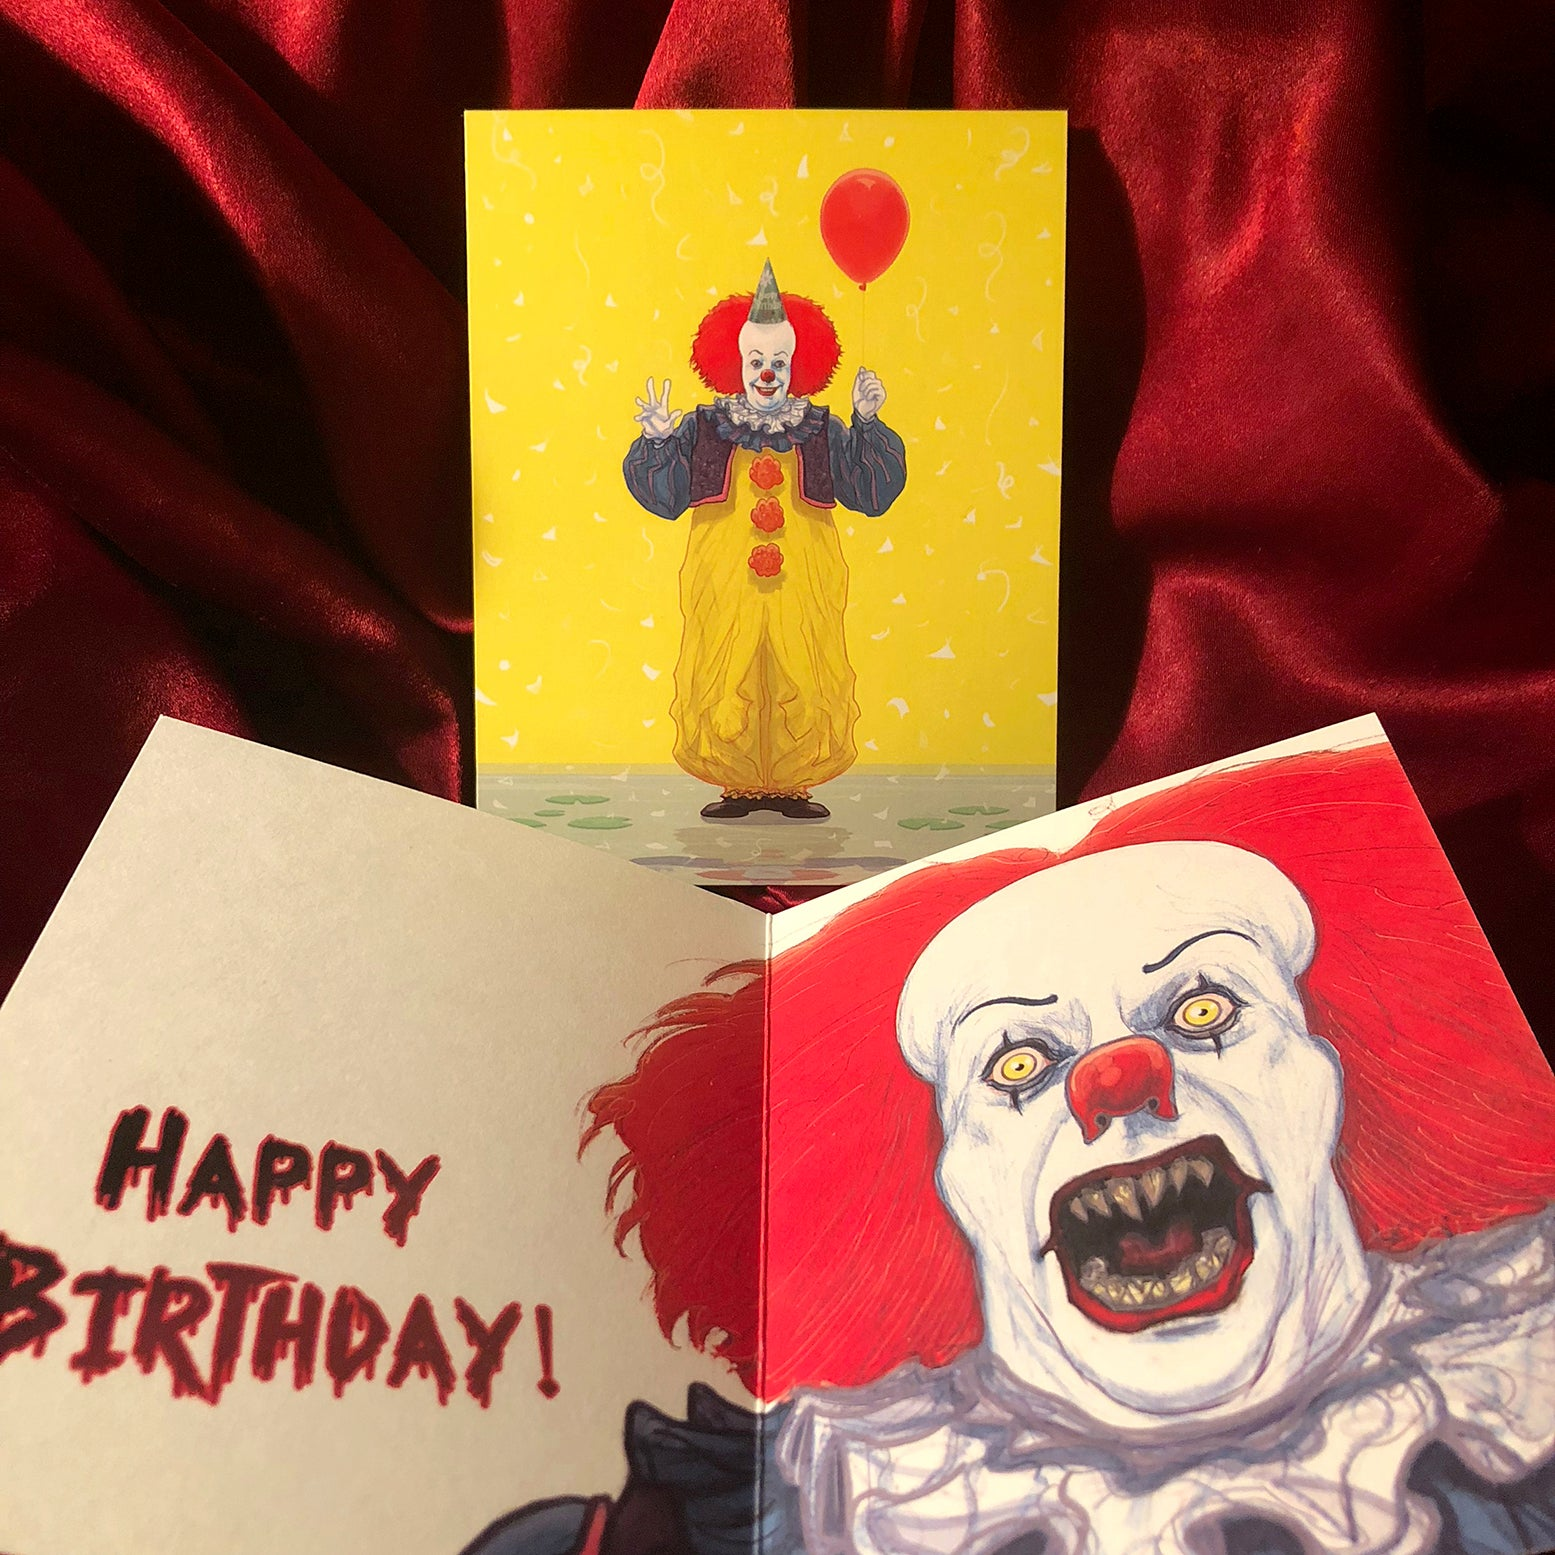 IT Pennywise BIRTHDAY CARD!